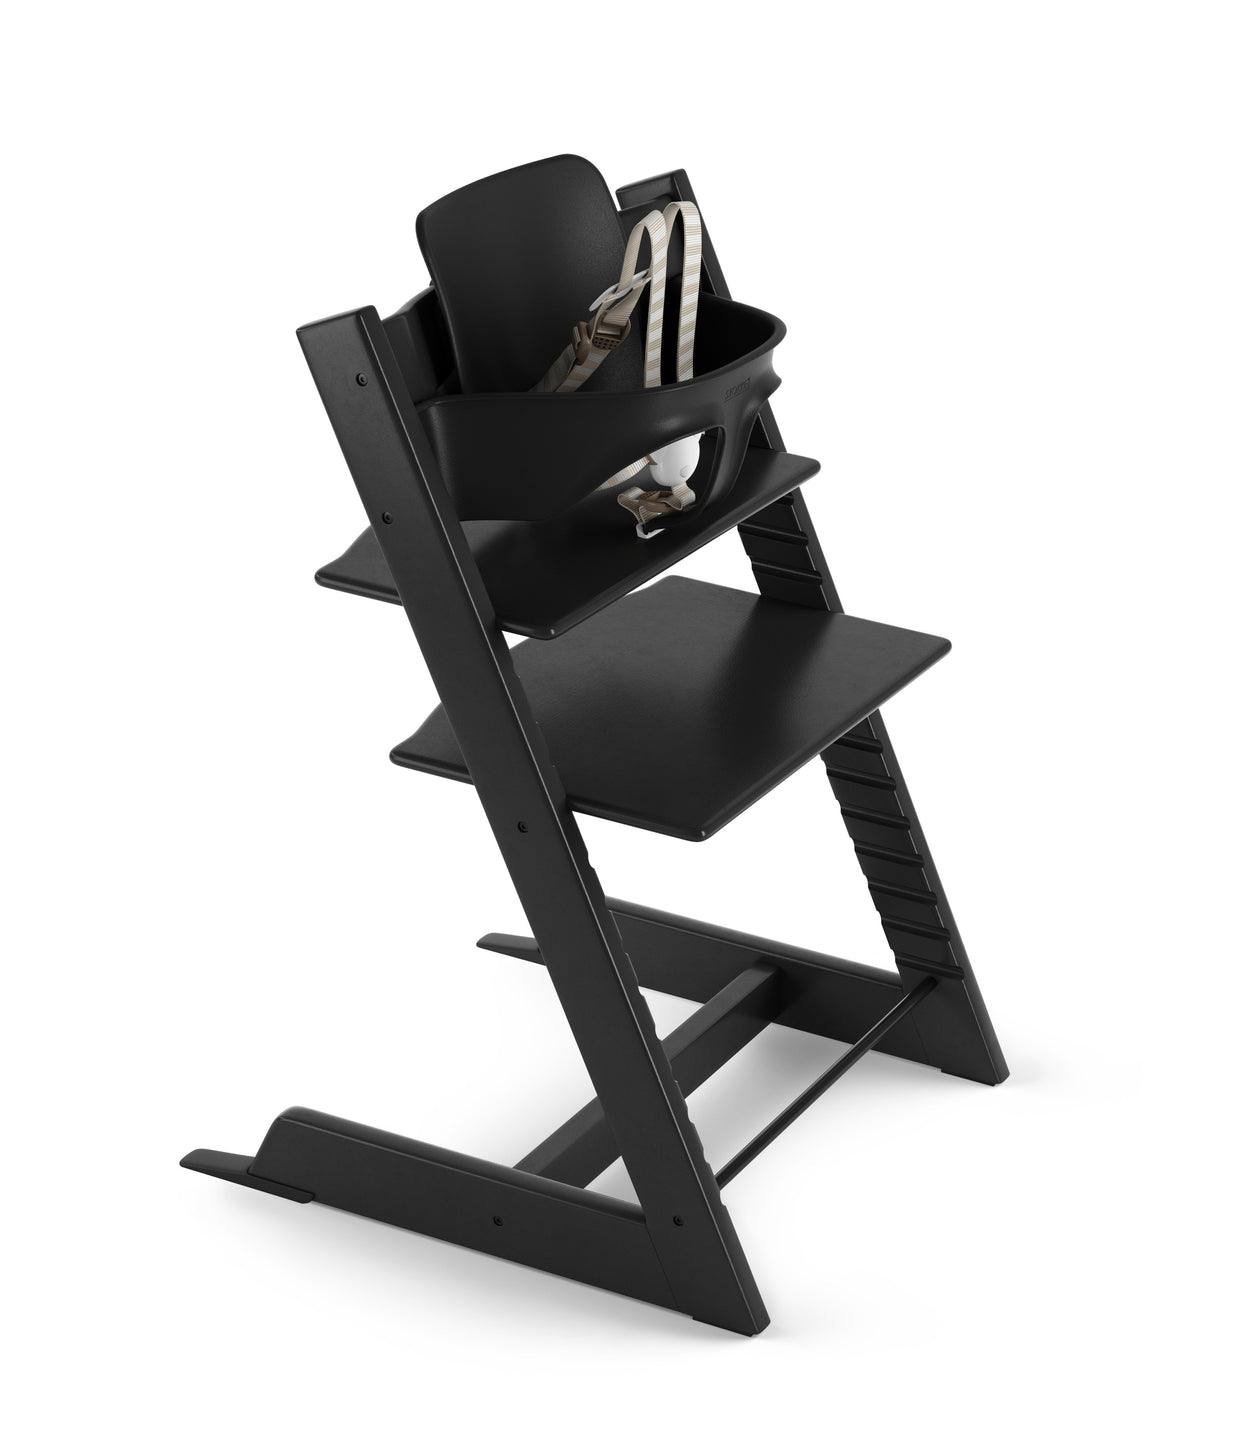 tripp trapp high chair black